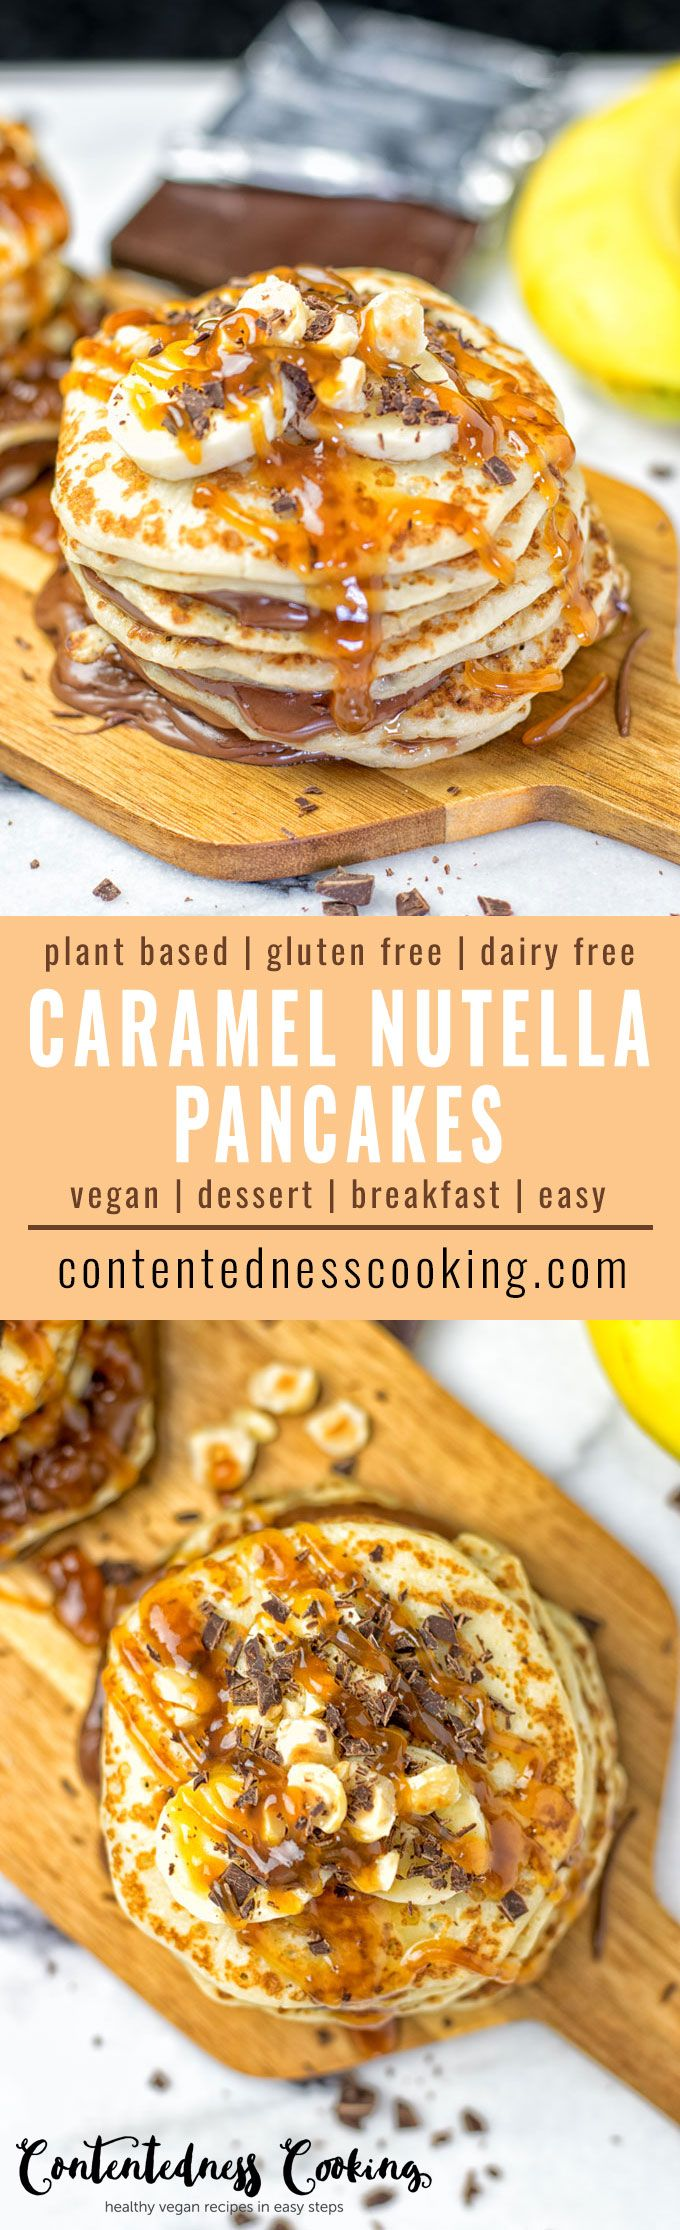 Get excited for the most delicious Caramel Nutella Pancakes you've ever made. These are vegan, gluten free, layered with a dairy free hazelnut chocolate spread and topped with caramel. Breakfast, or dessert? No need to decide! #vegan #glutenfree #dairyfree #breakfast #dessert #plantbased